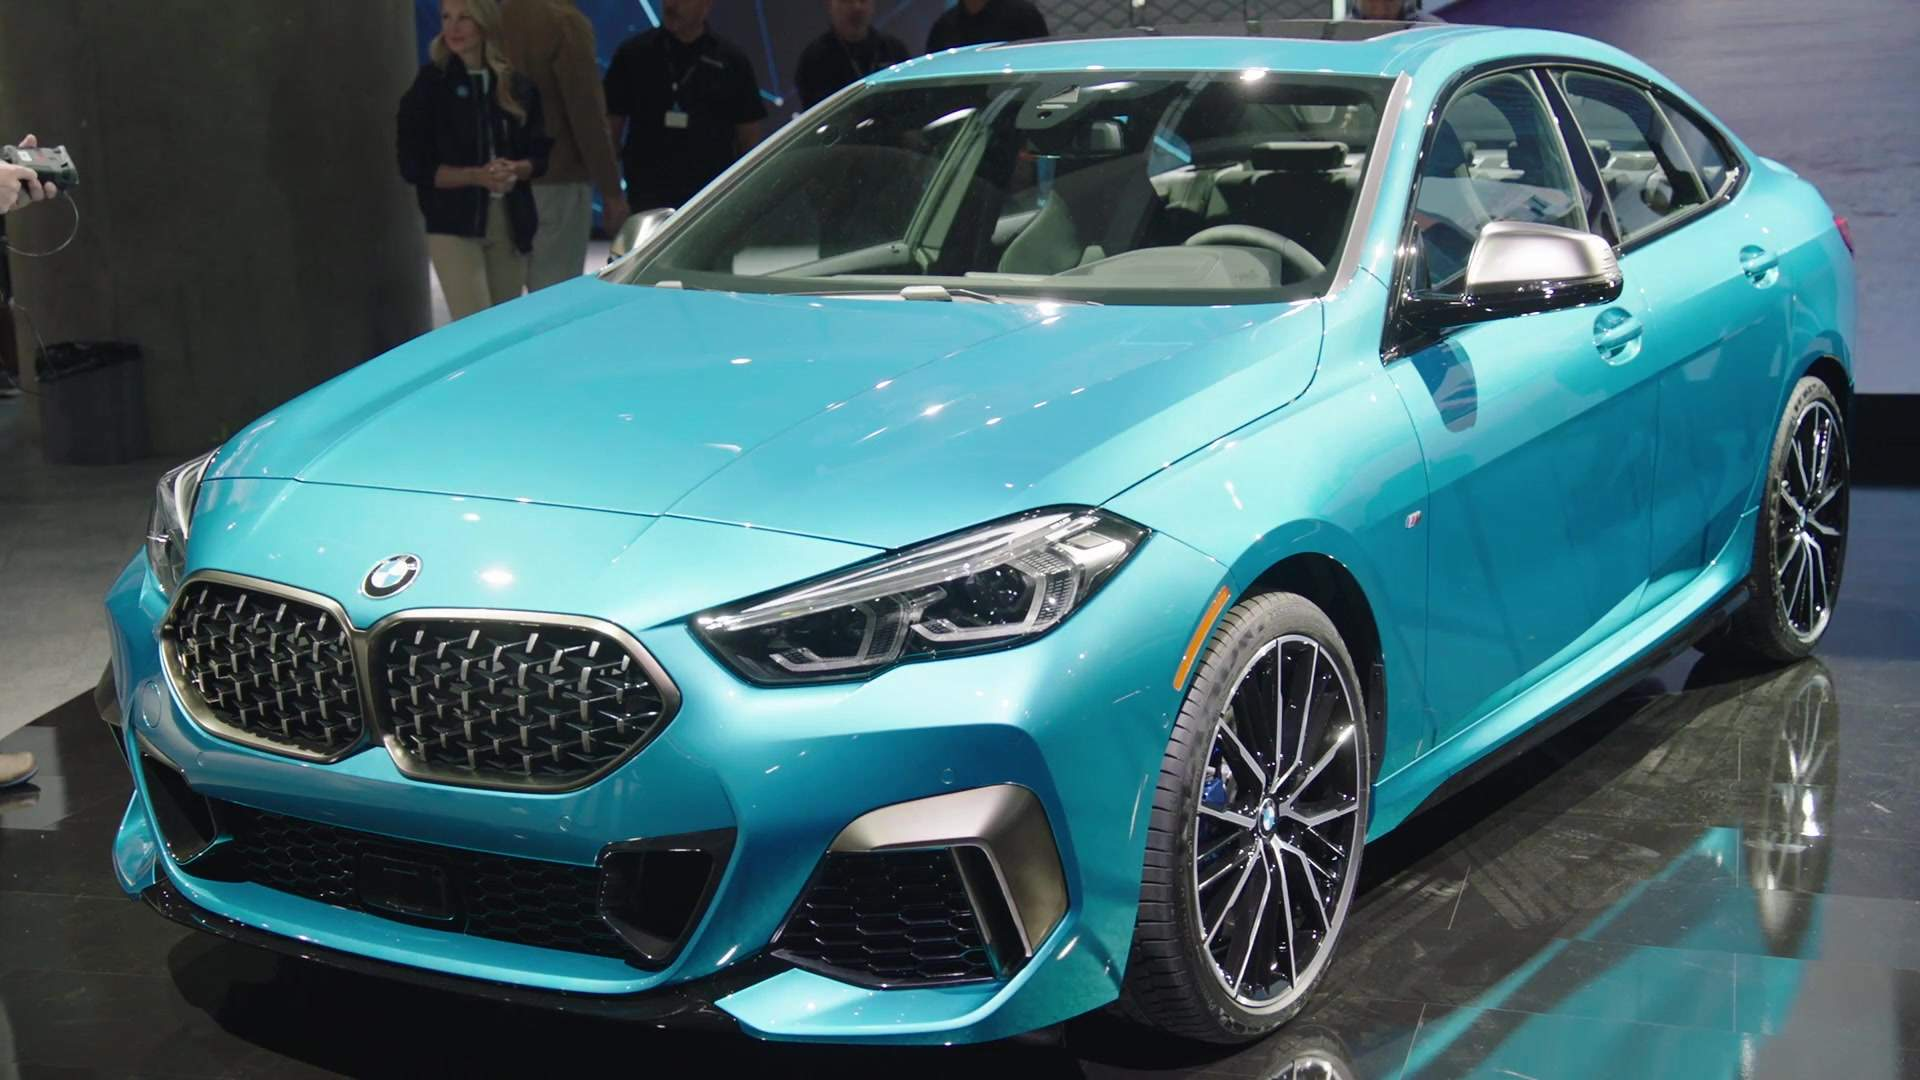 The new BMW 2 Series Coupe at LA Auto Show 2019